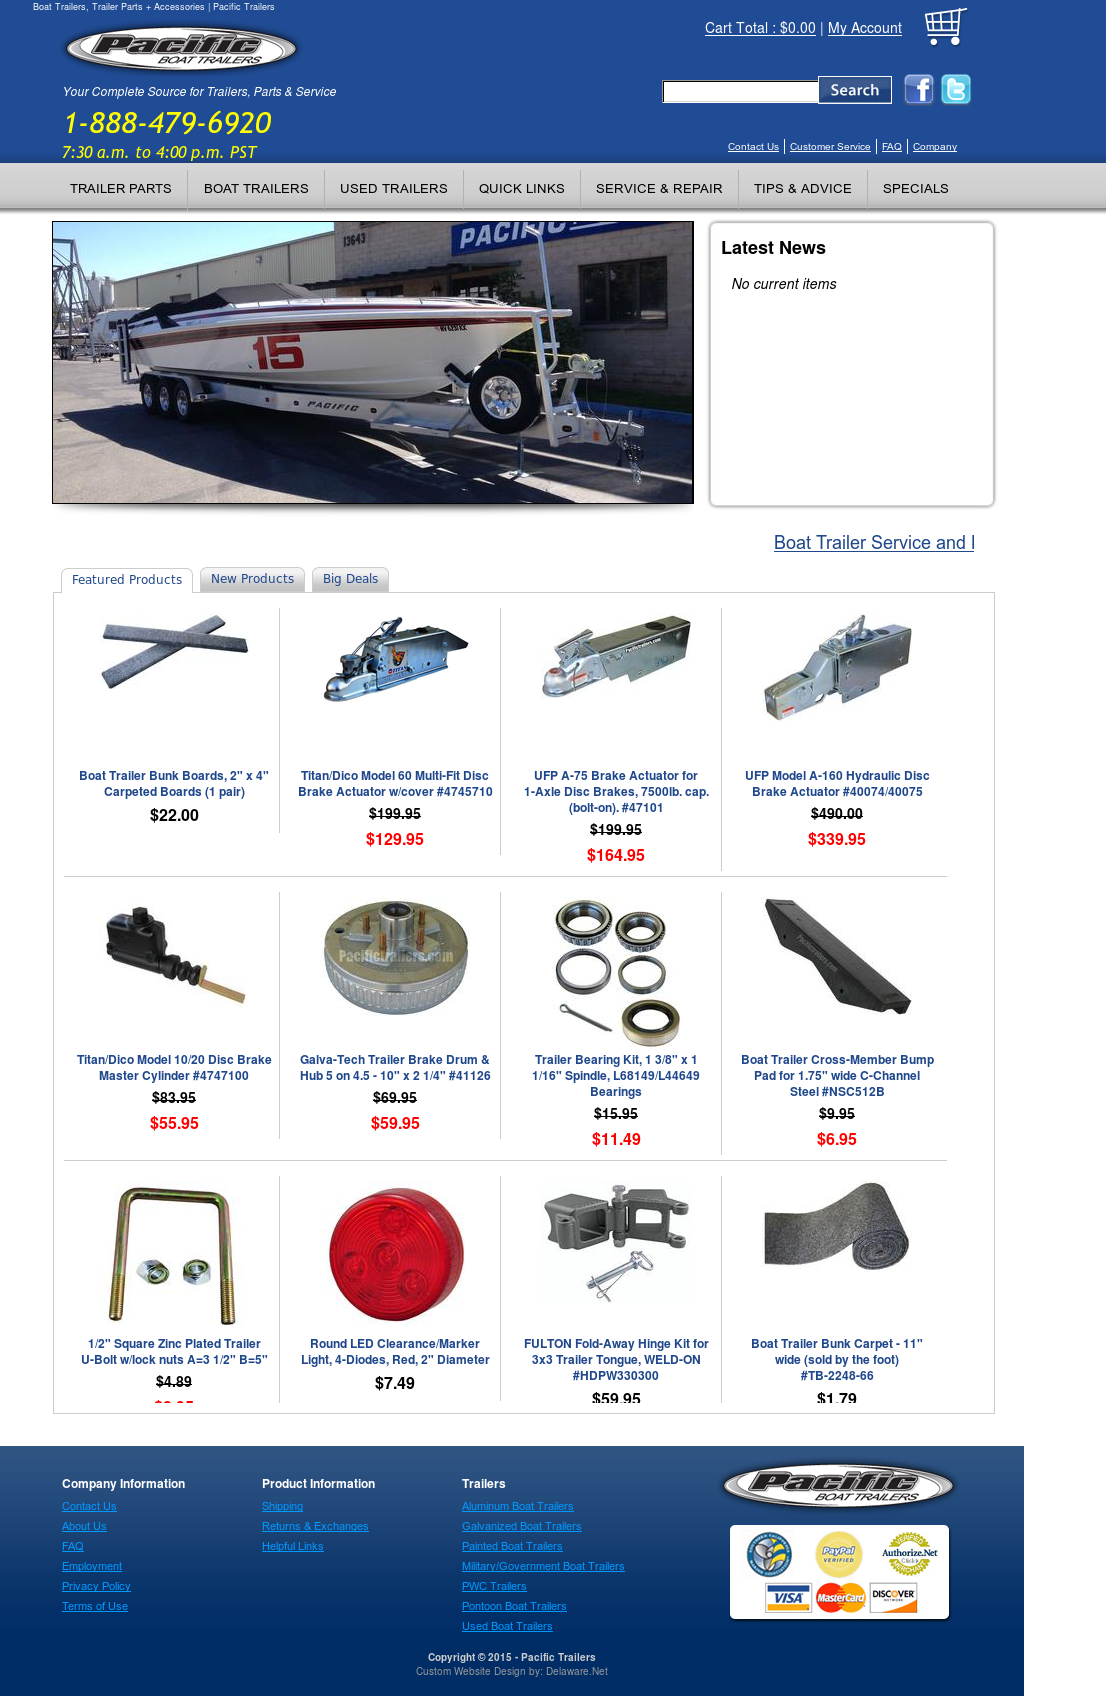 Boat Trailers Pacific Competitors, Revenue and Employees - Owler Company Profile